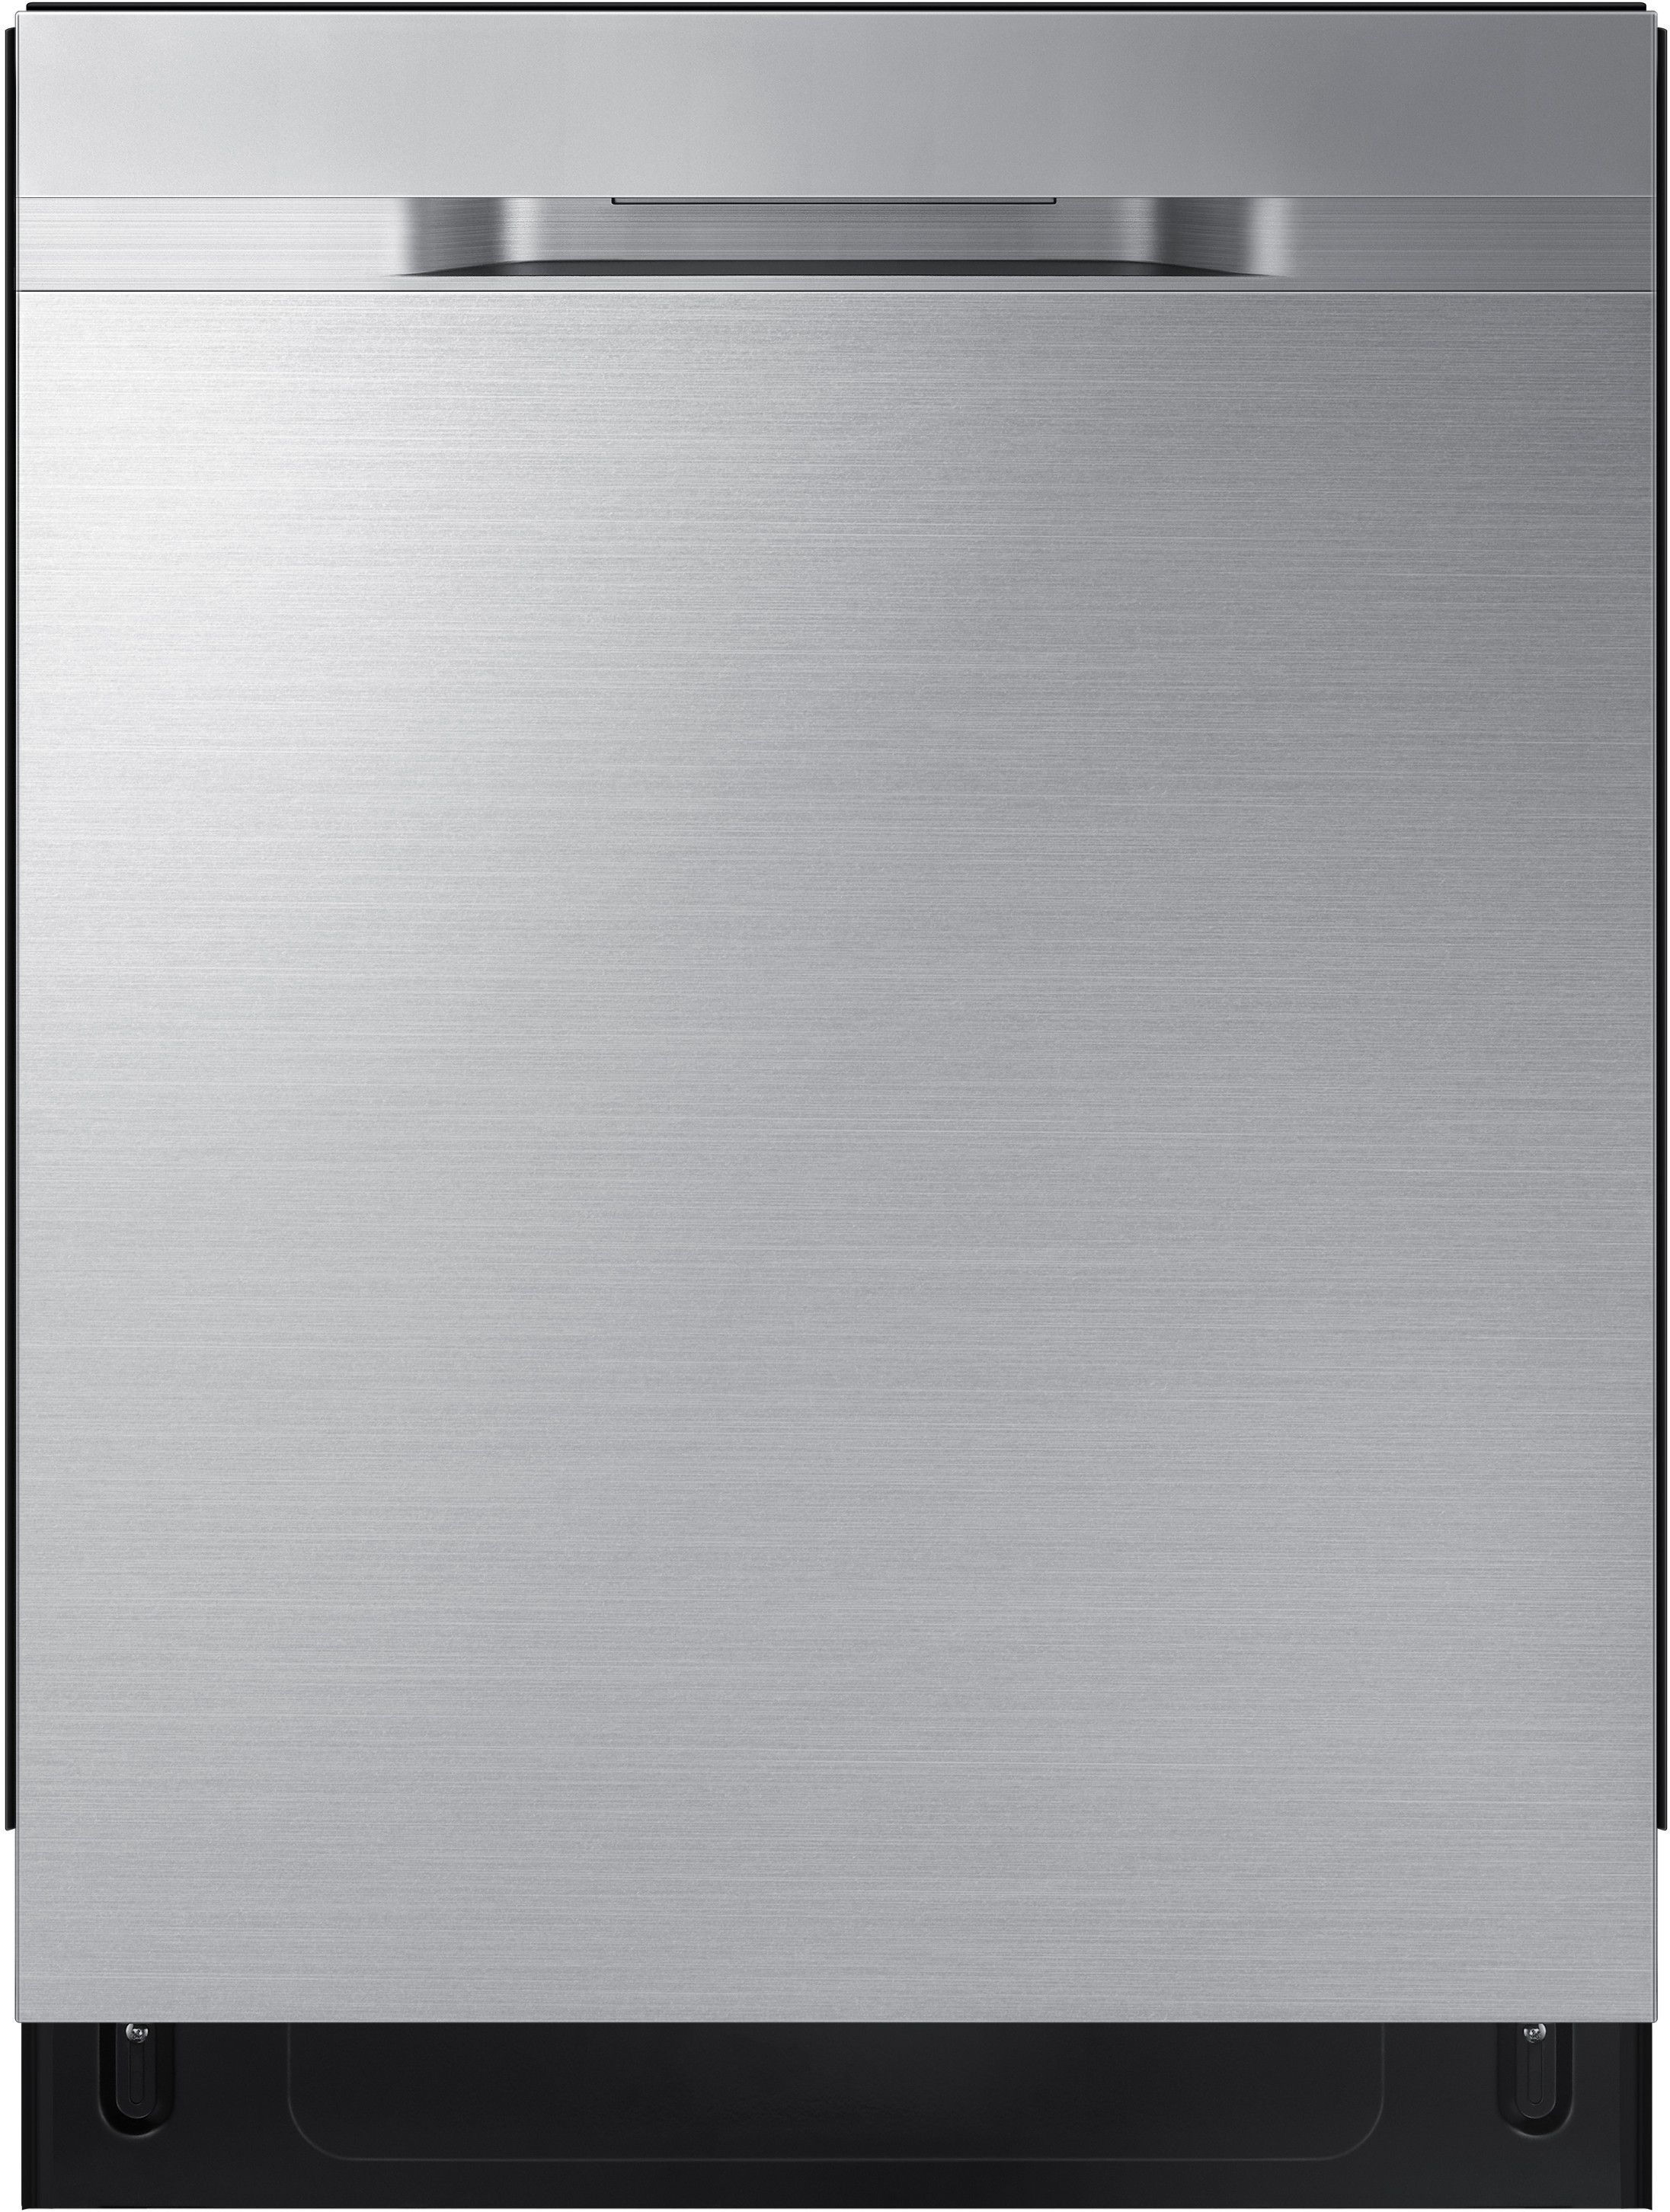 Samsung Dw80r5060us Steel Tub Built In Dishwasher Integrated